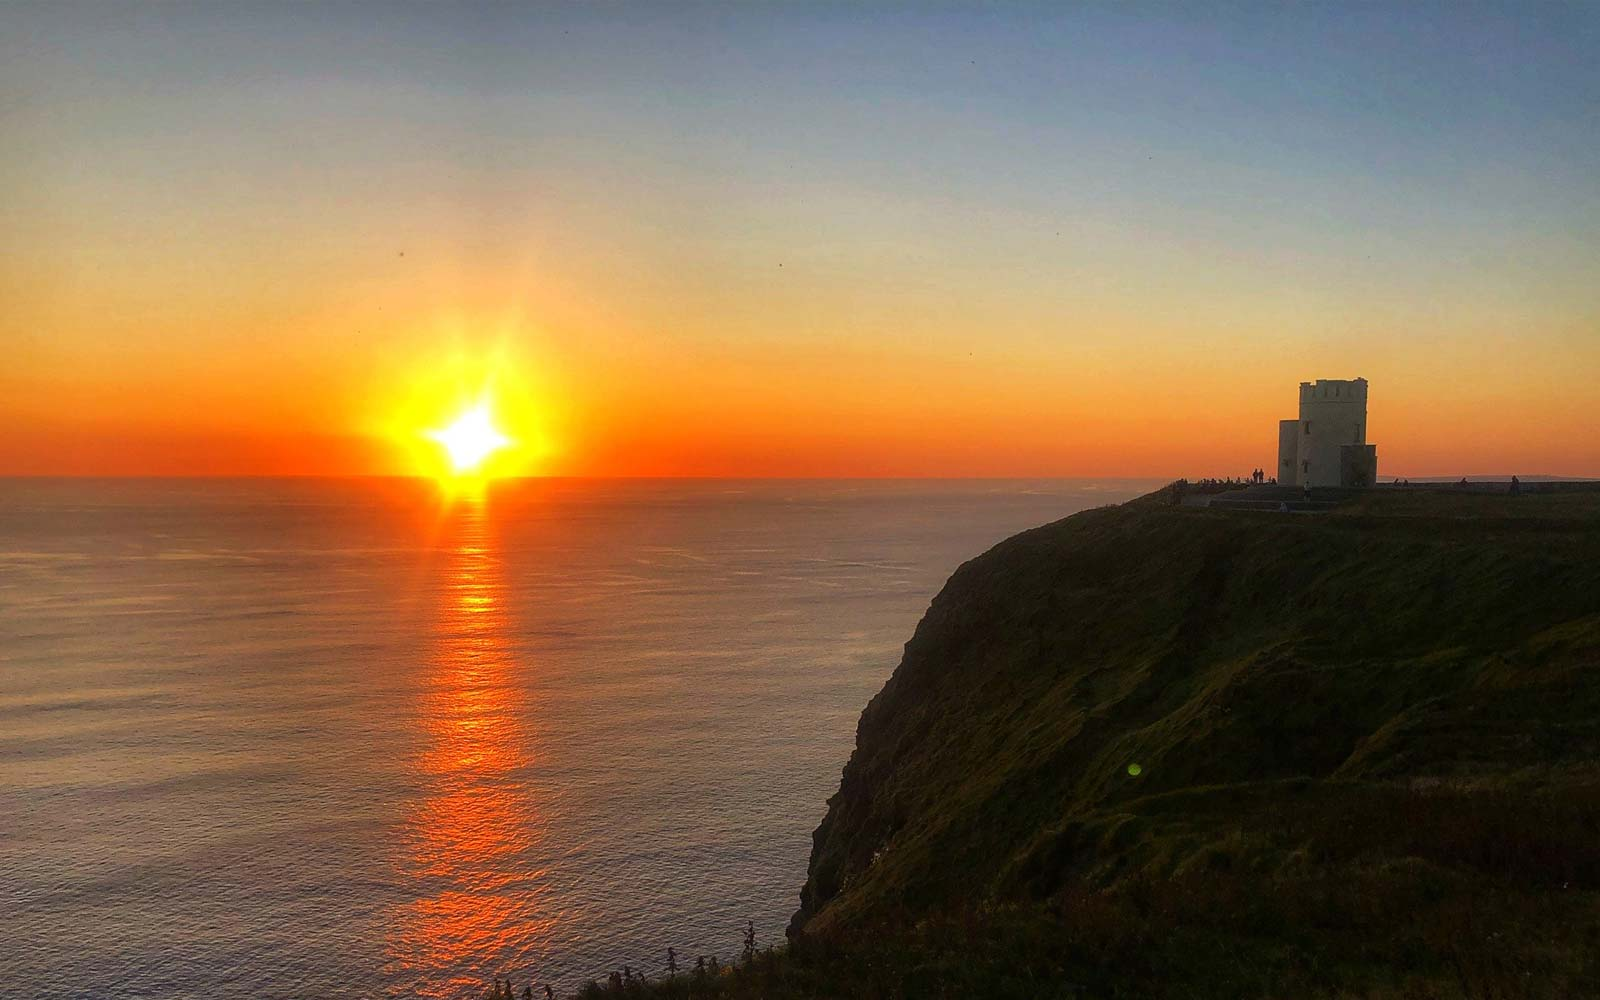 Sunset At The Cliffs Of Moher With O Briens Castle In The Foreground